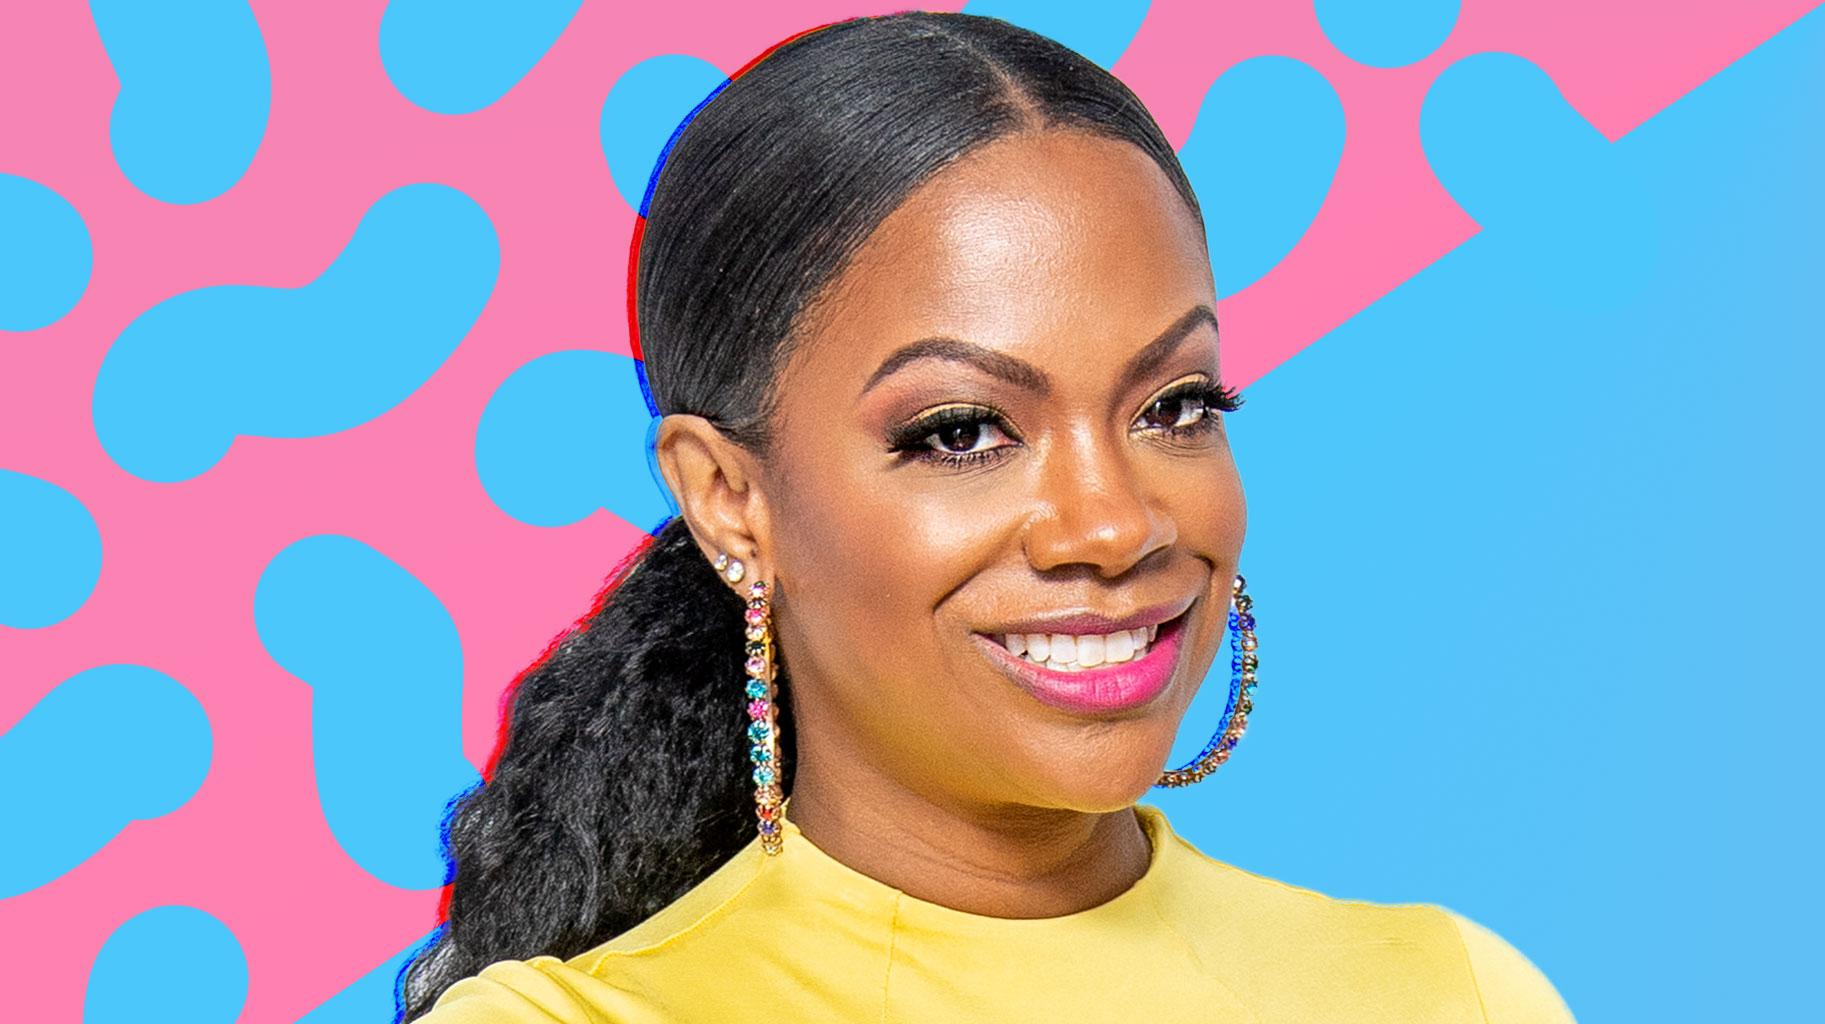 Kandi Burruss' Photo With Blaze Tucker Makes Fans Laugh - Check Out The Funny Caption